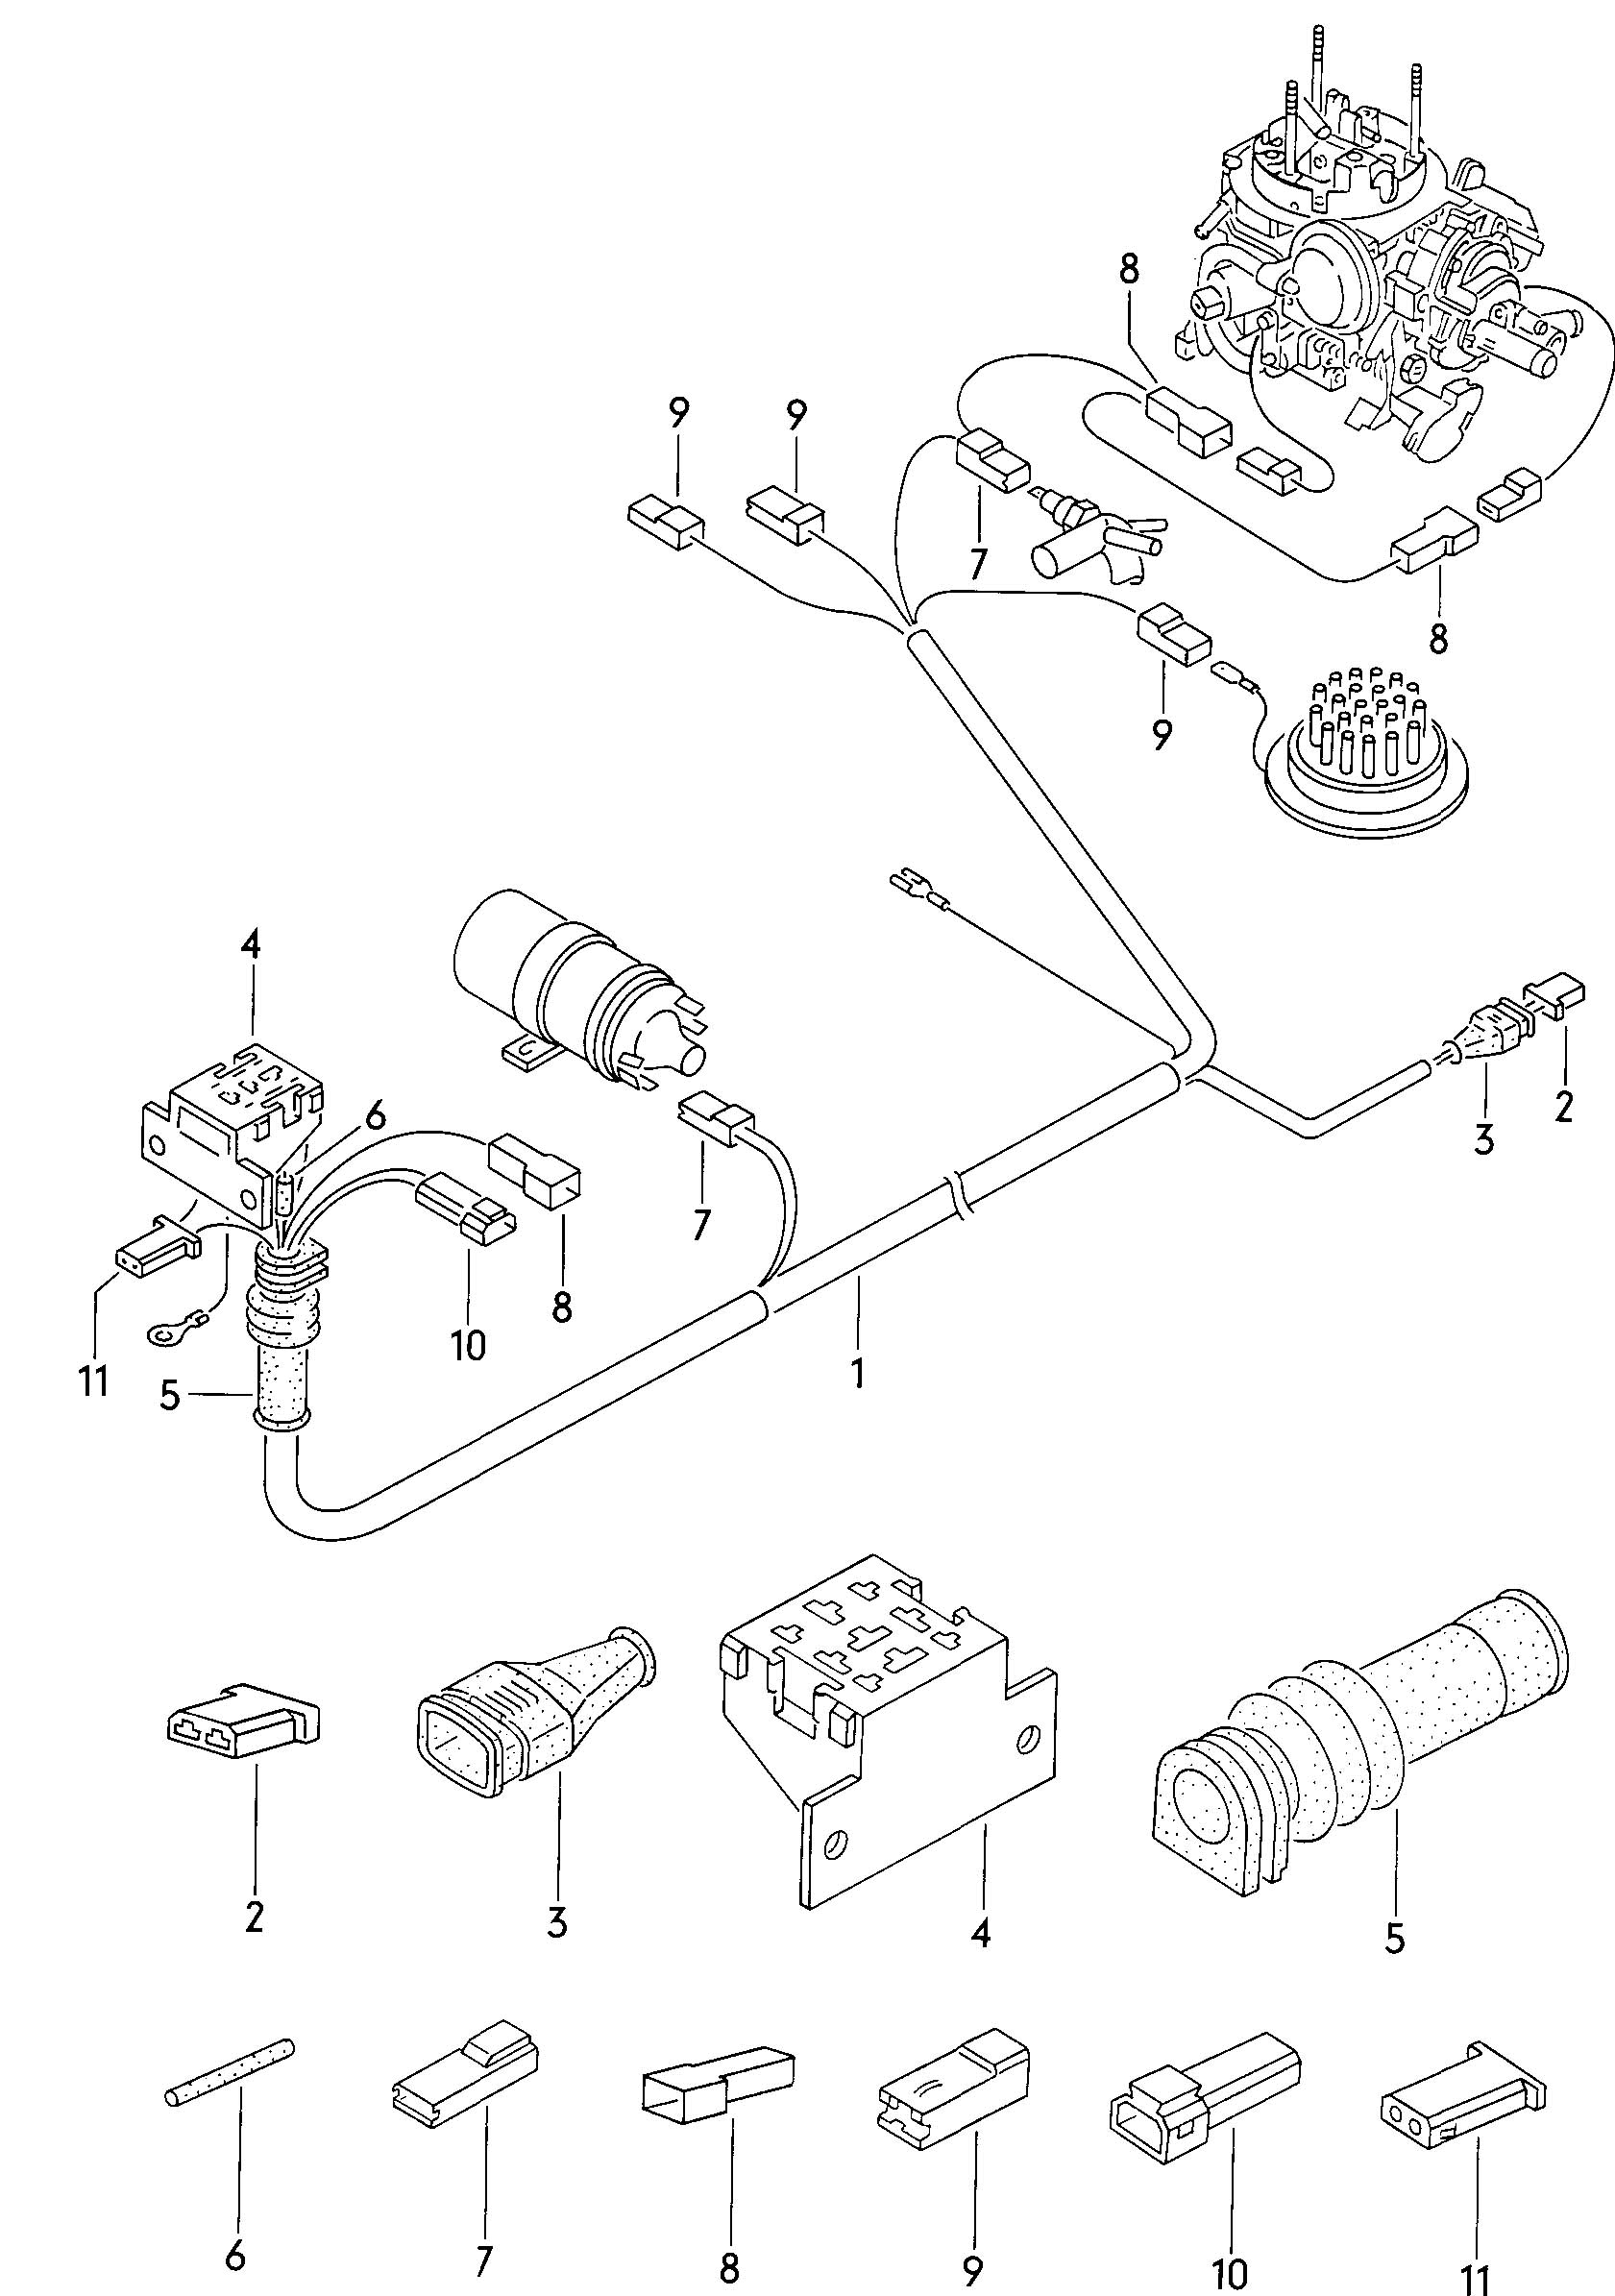 1971 Vw Beetle Parts Diagram Wiring Diagrams 1970 Harness Super Kits